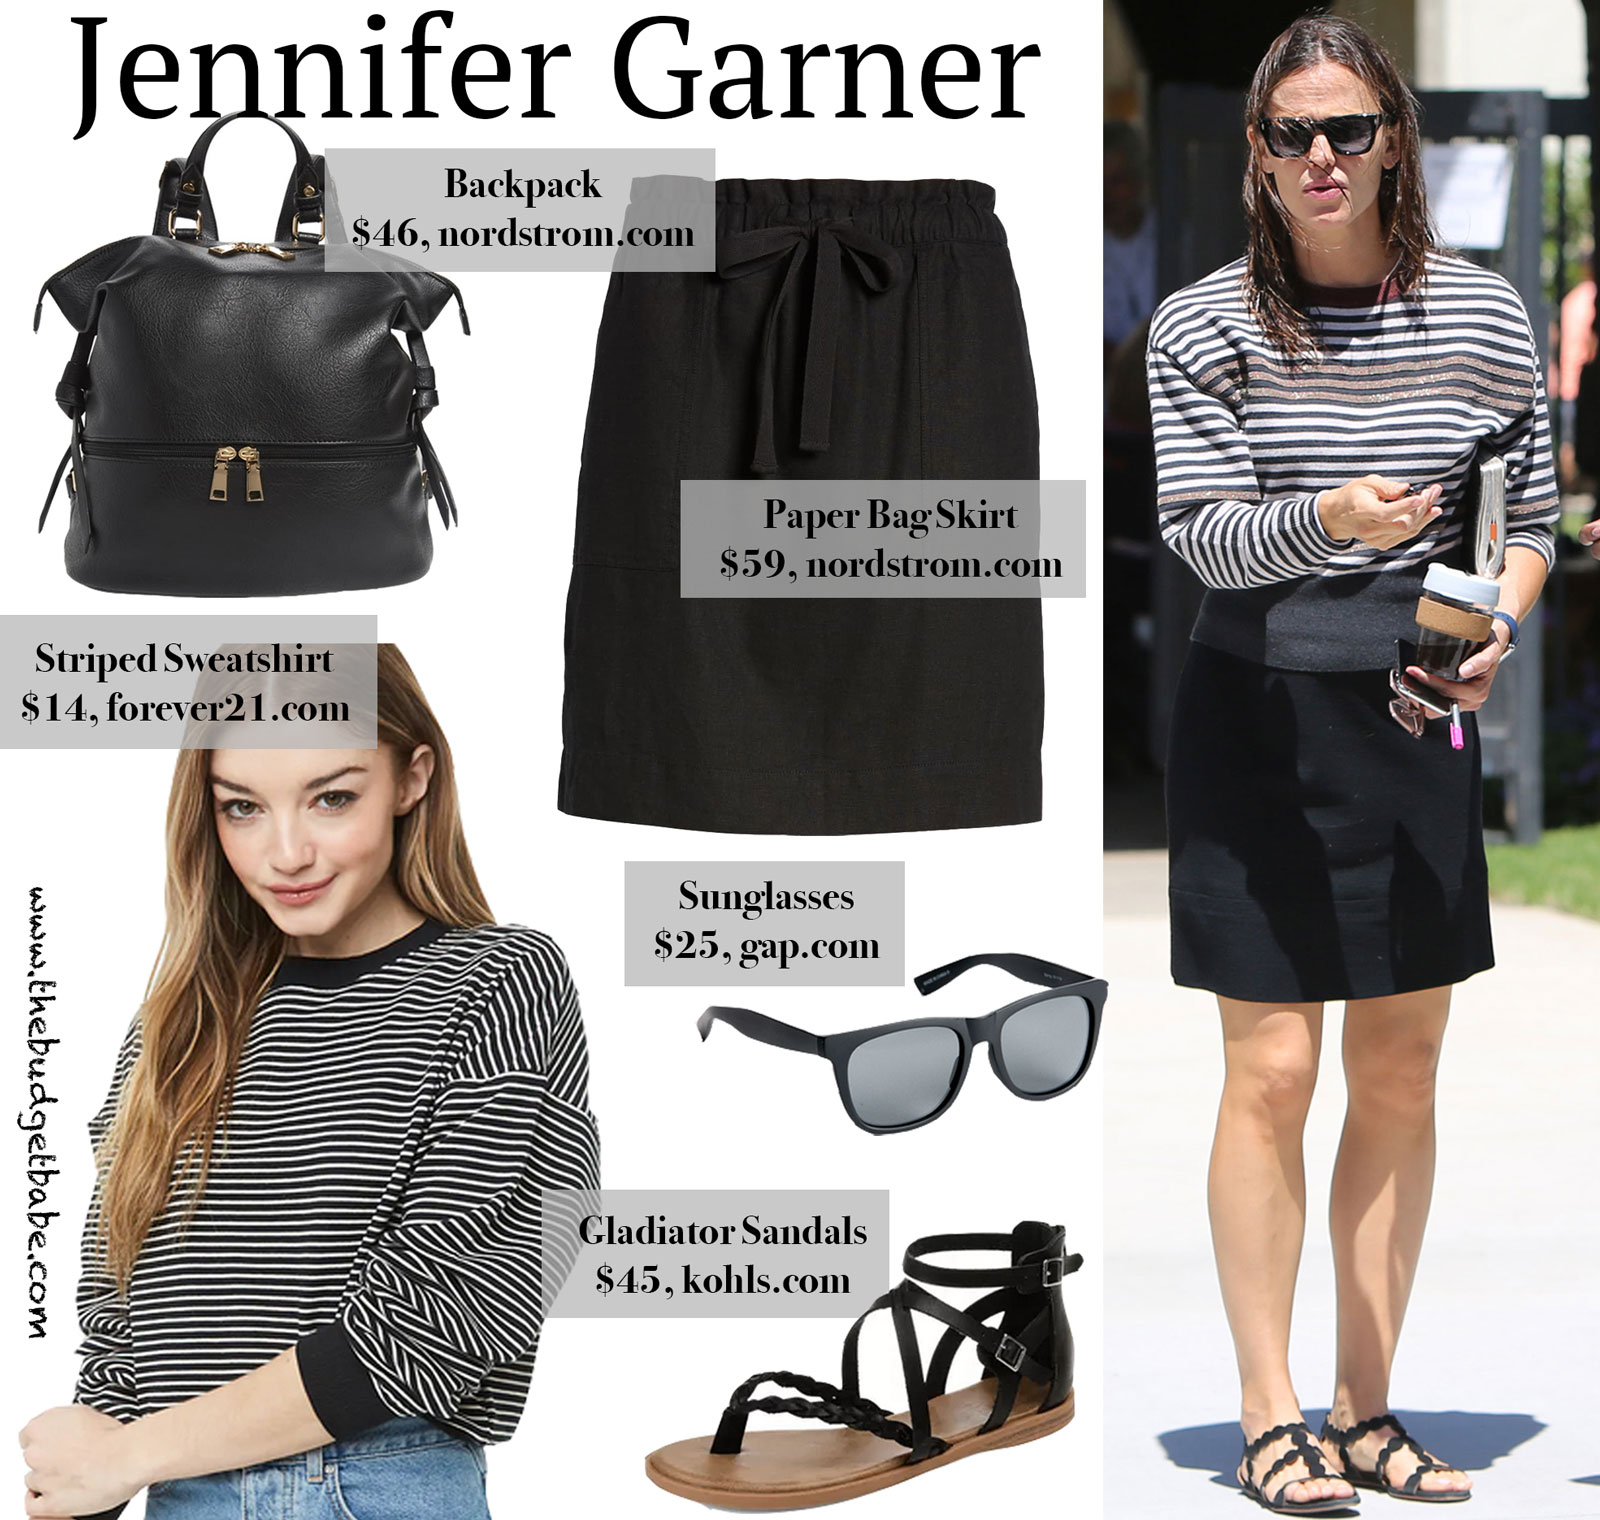 Jennifer Garner Stripe Sweater Look for Less